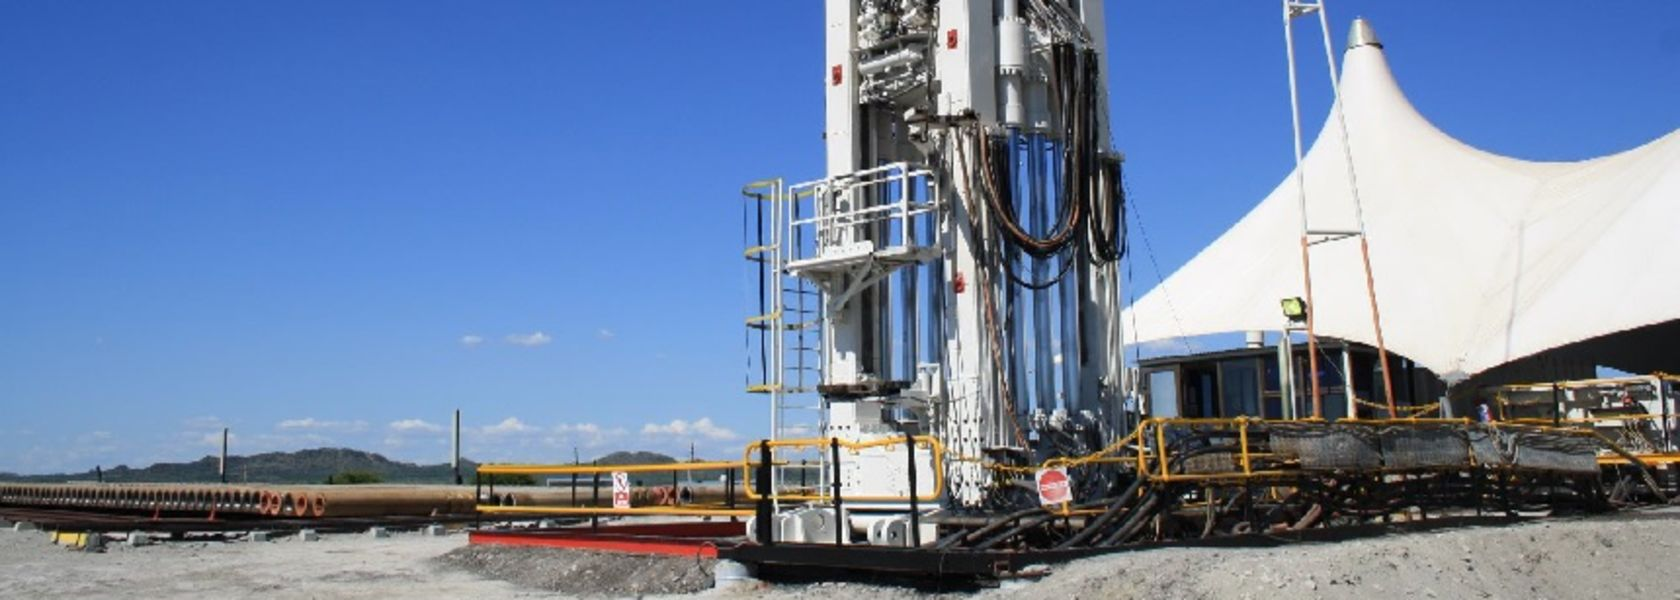 Master Drilling acquires Atlantis Group operations - Mining